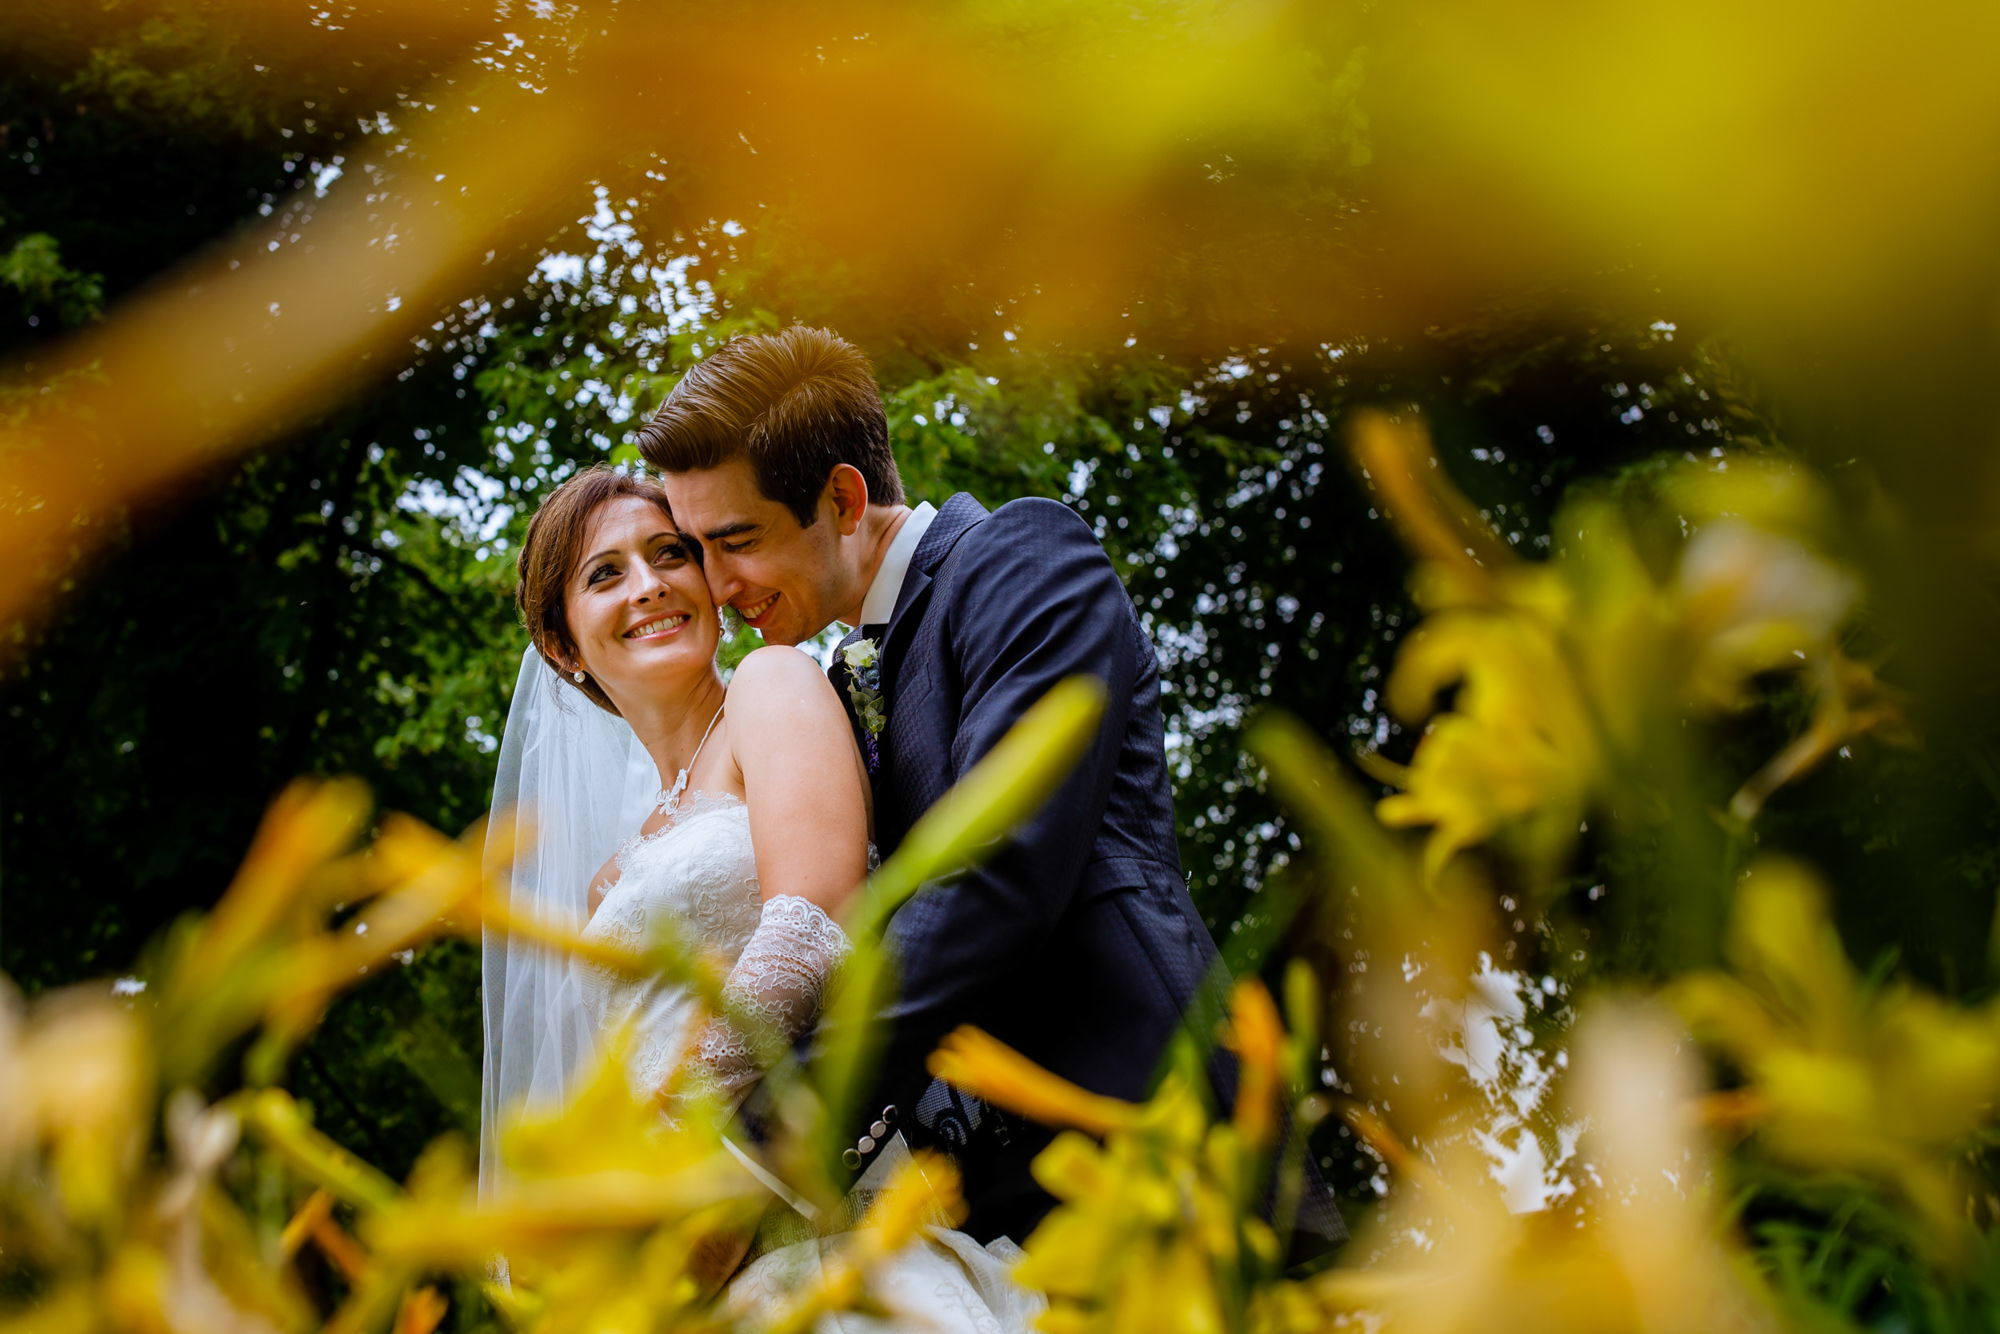 Couple portrait in yellow lily field - photo by Philippe Swiggers